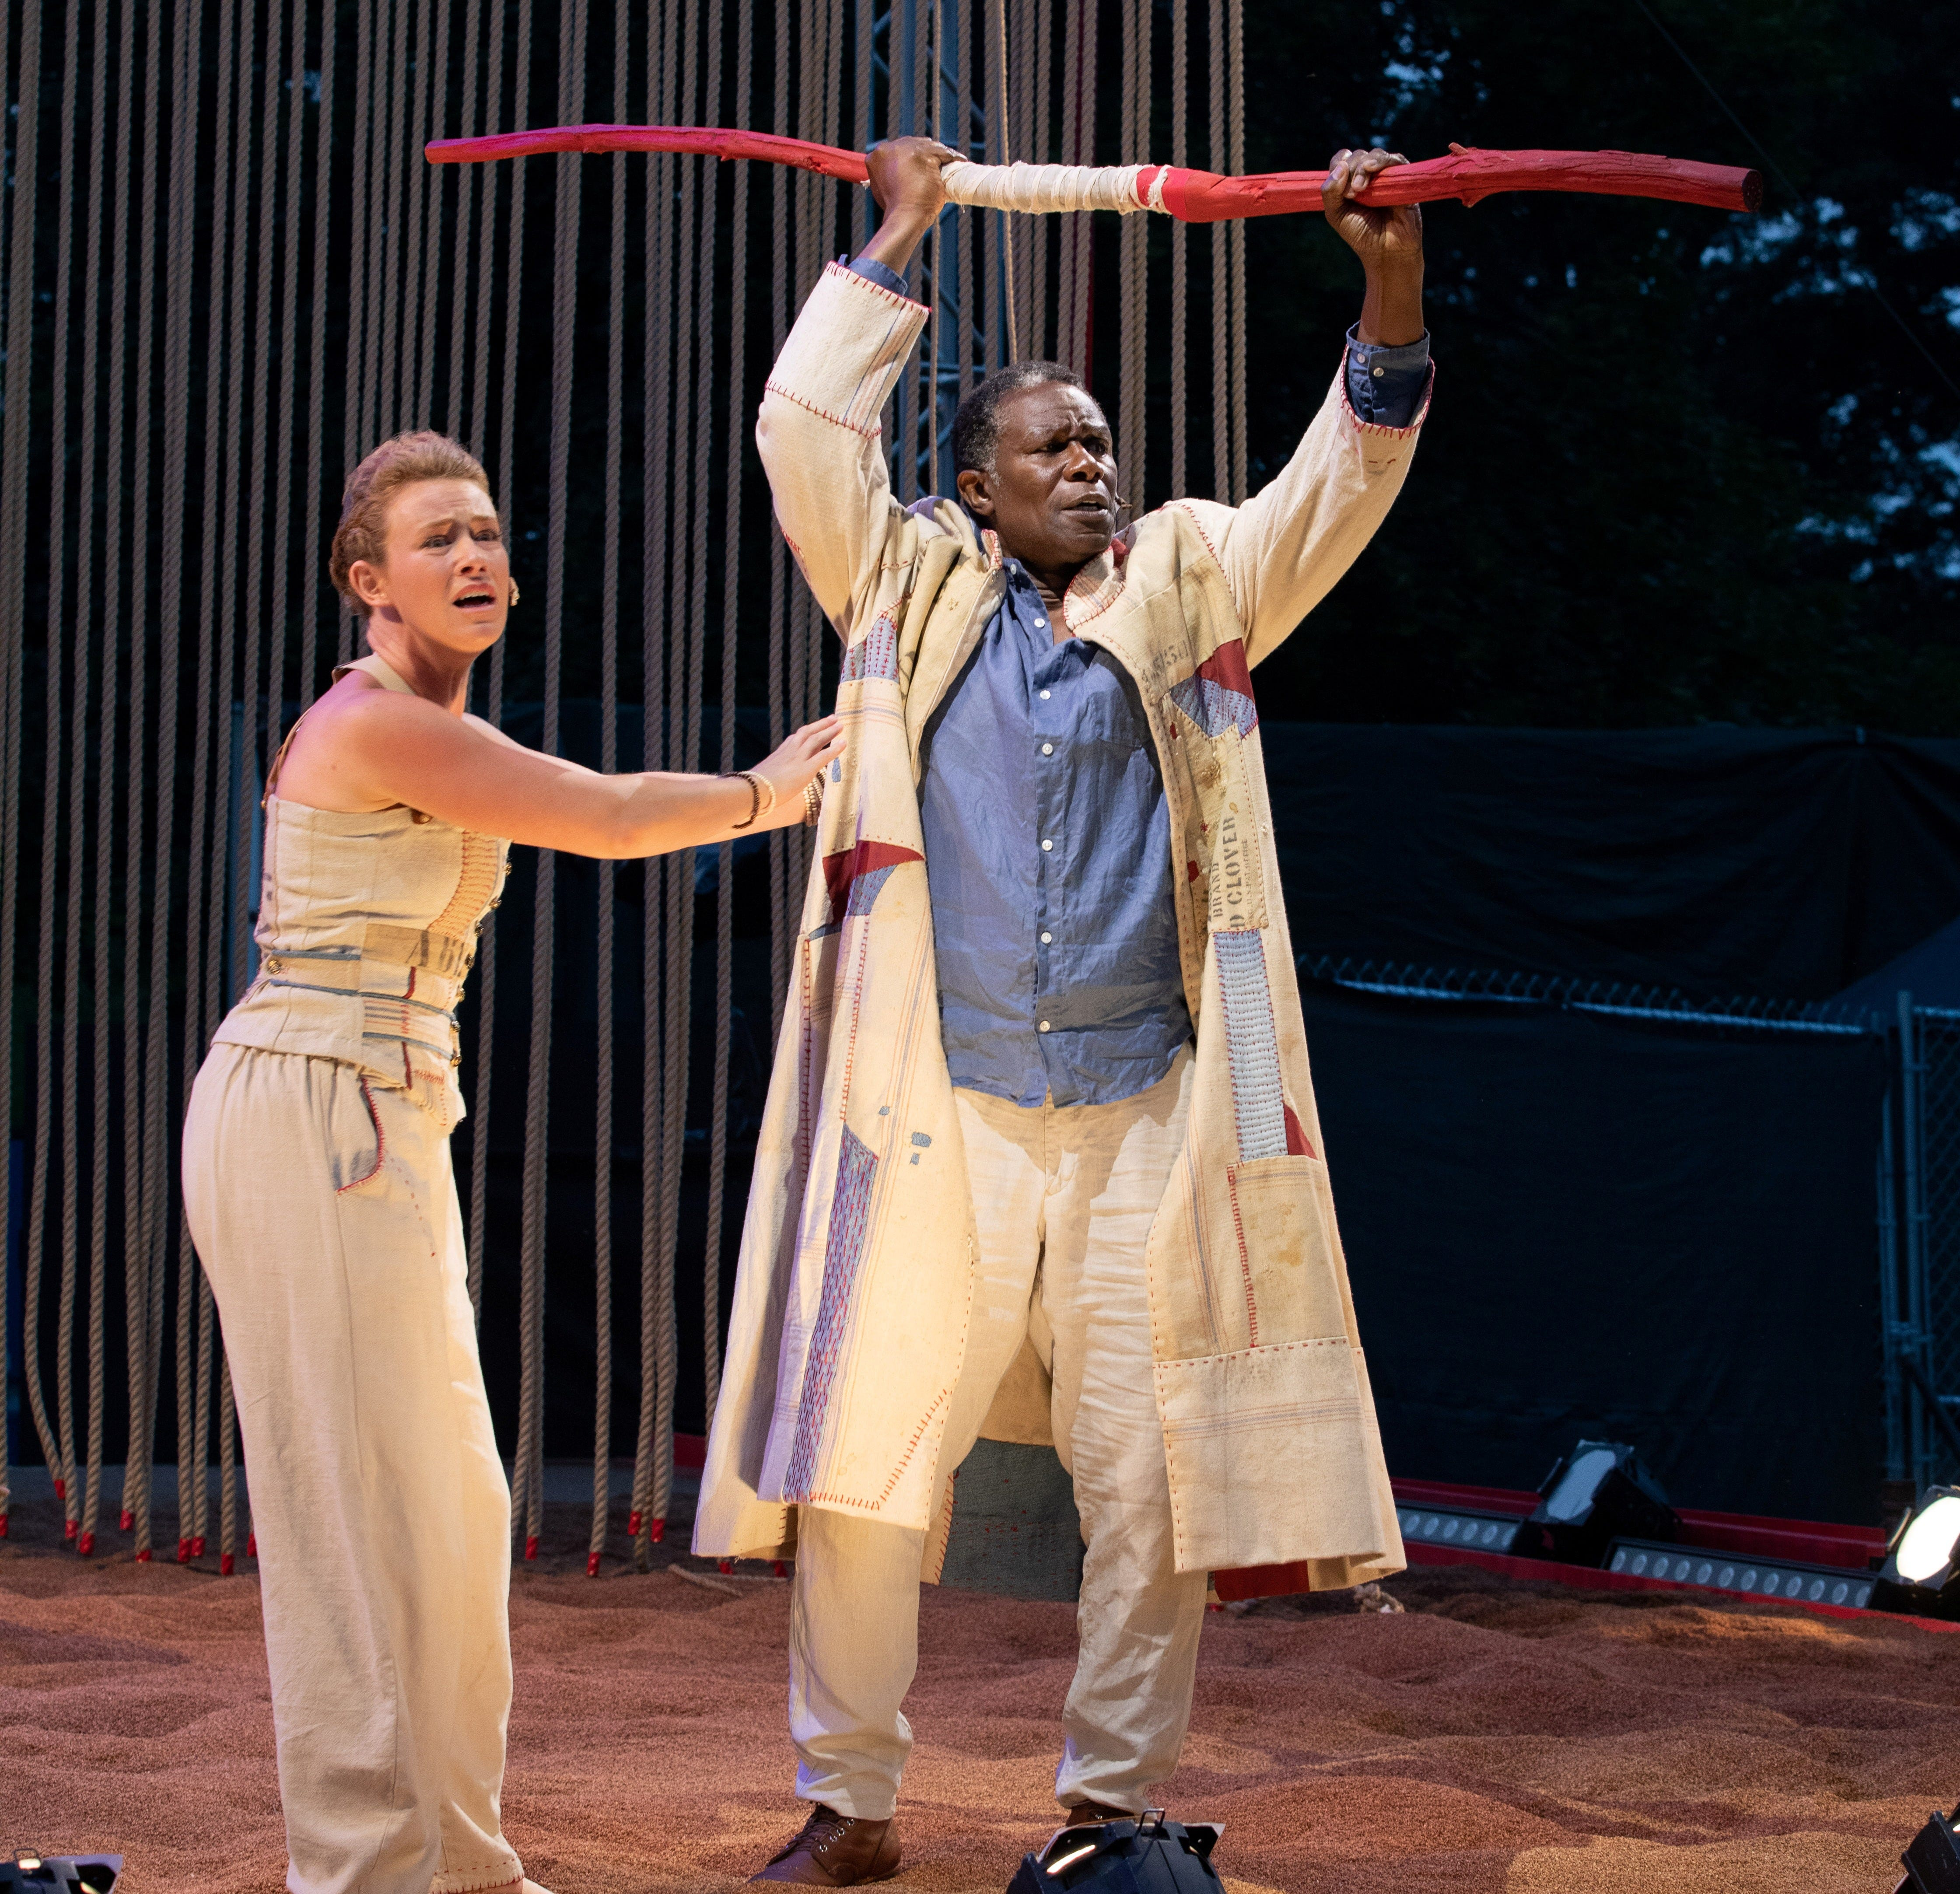 Free outdoor Shakespeare at Boston Common stars Quincy actor/dancer